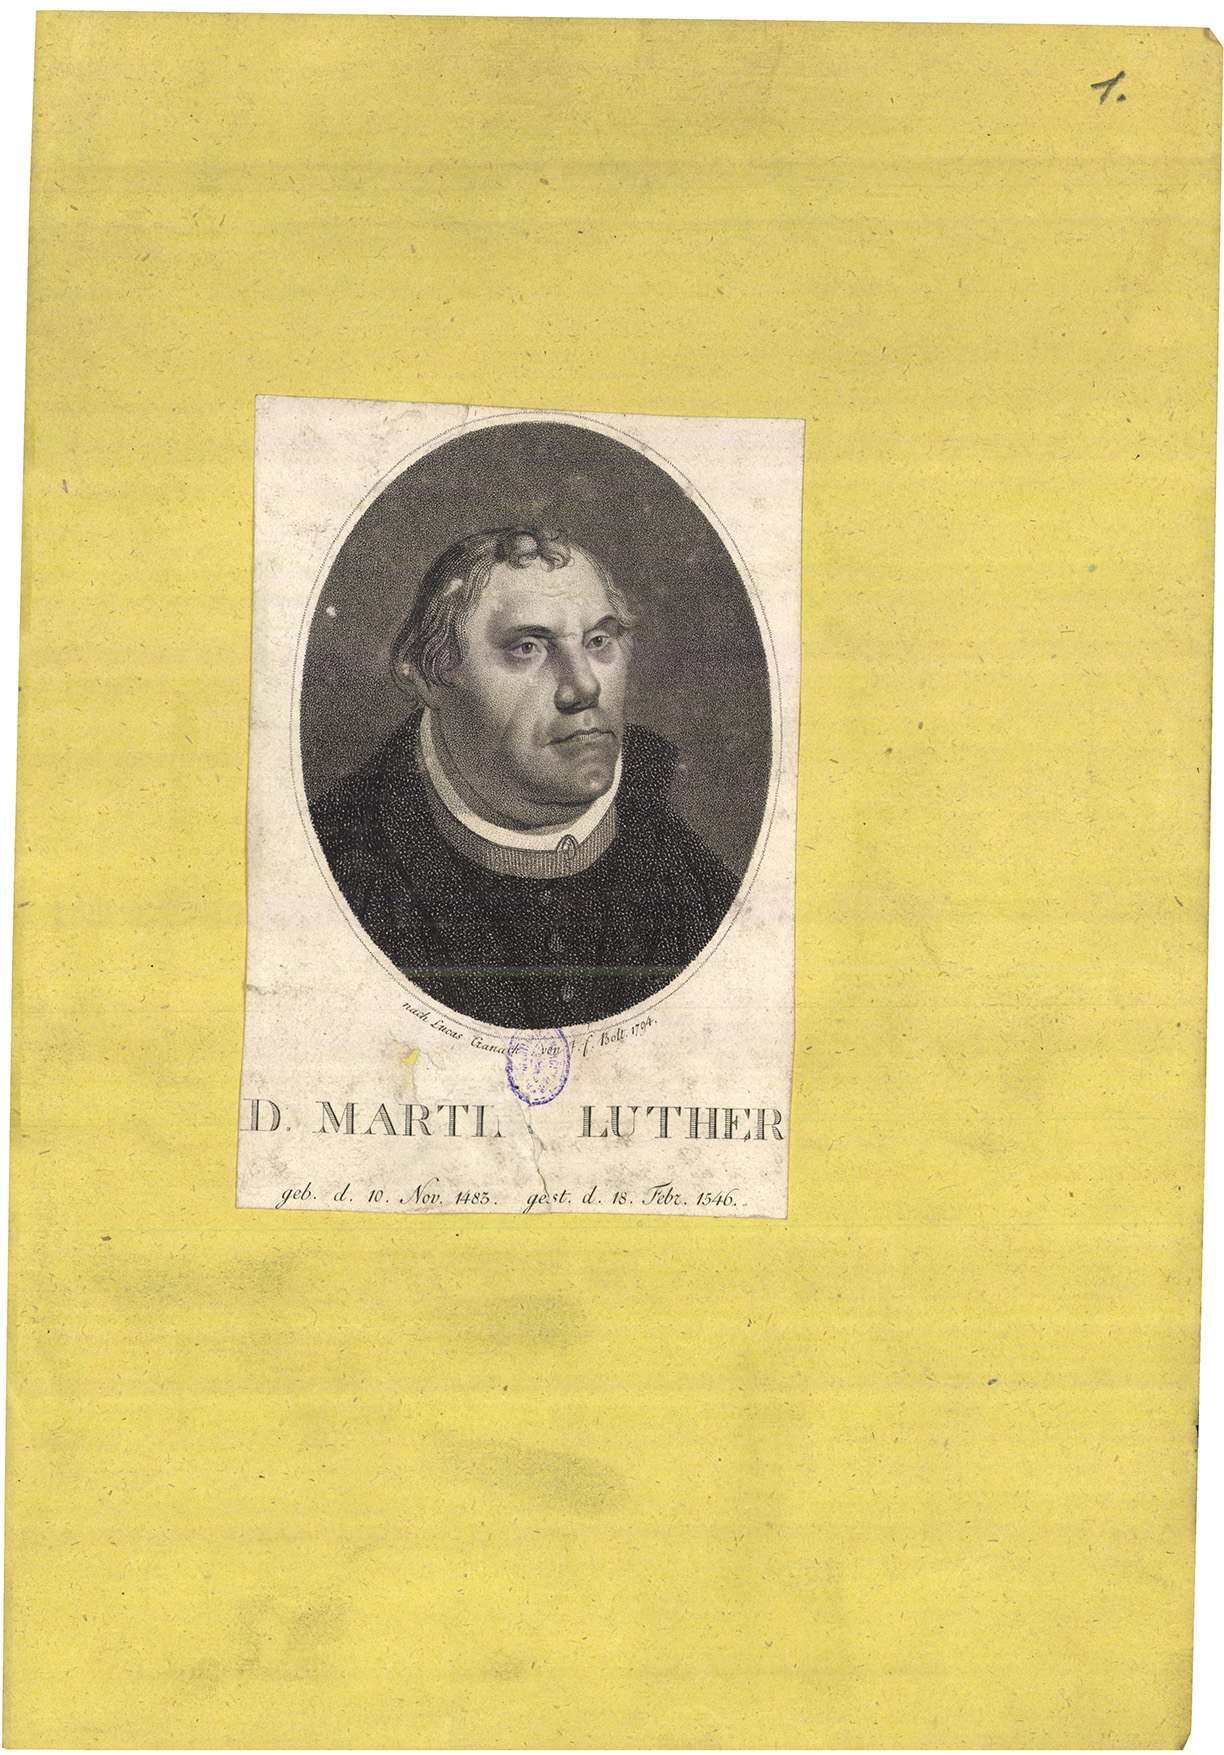 D. Martin Luther